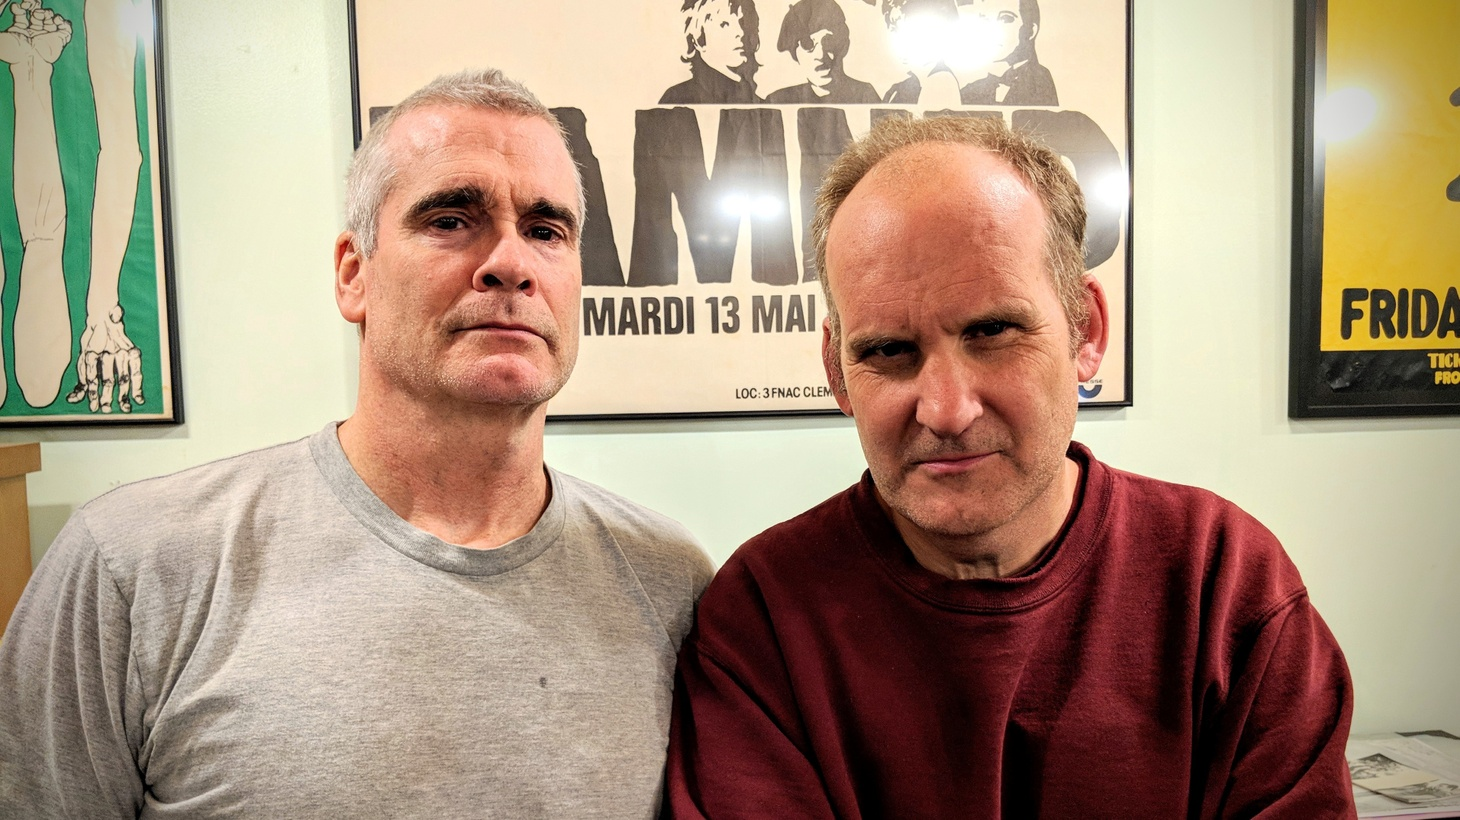 Two independent music veterans. One studio. Henry Rollins is joined by his good friend Ian MacKaye (Fugazi, Minor Threat, Dischord Records) as they    recap stories from the 1981 Black Flag tour of Europe    in this special Guest DJ set.